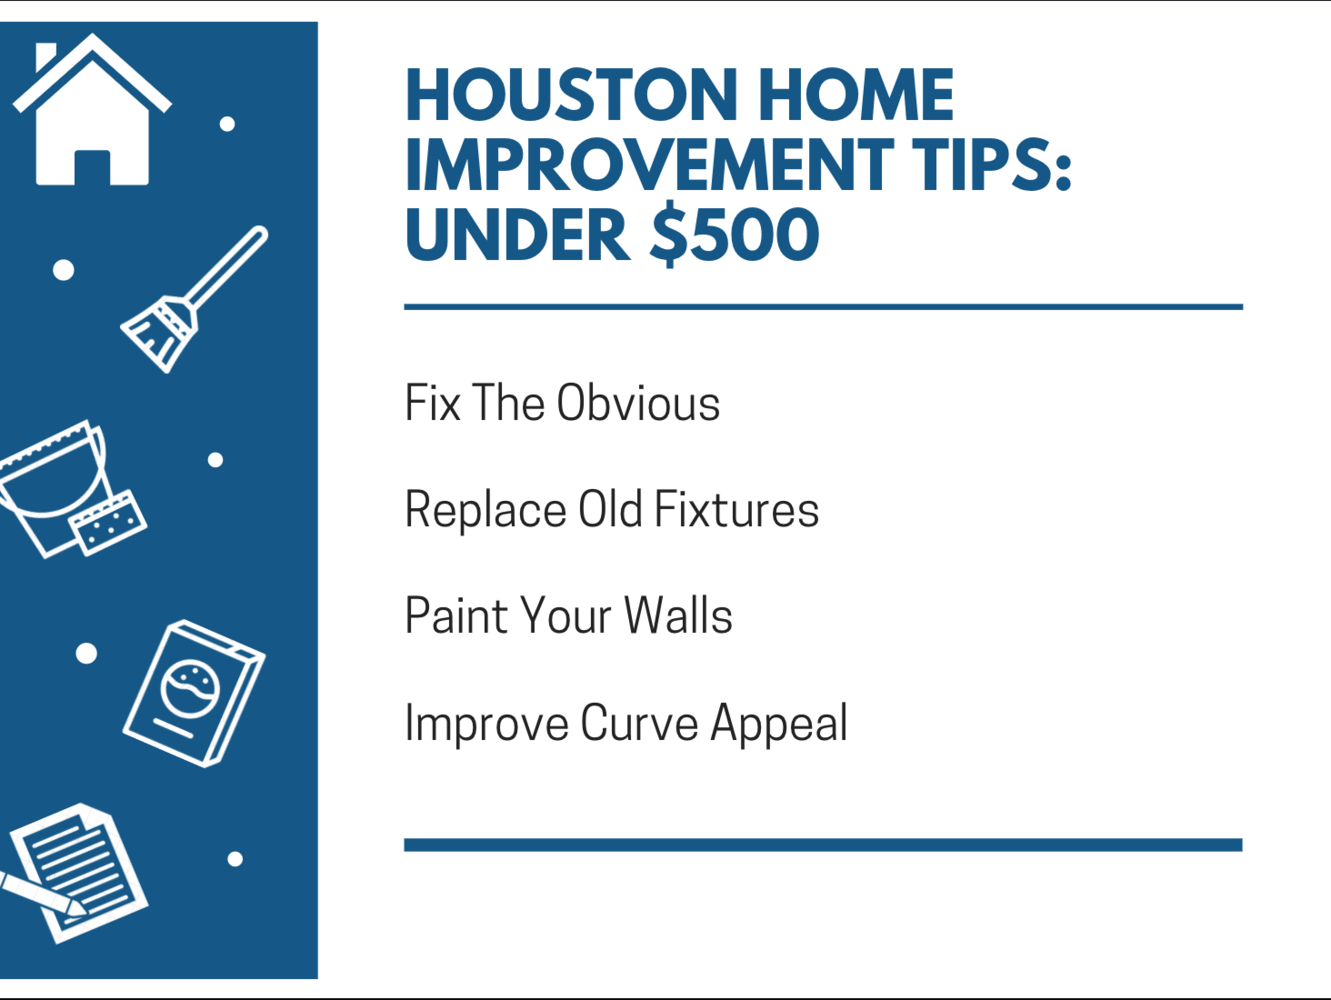 Houston Home Renovation Tips: Under $500